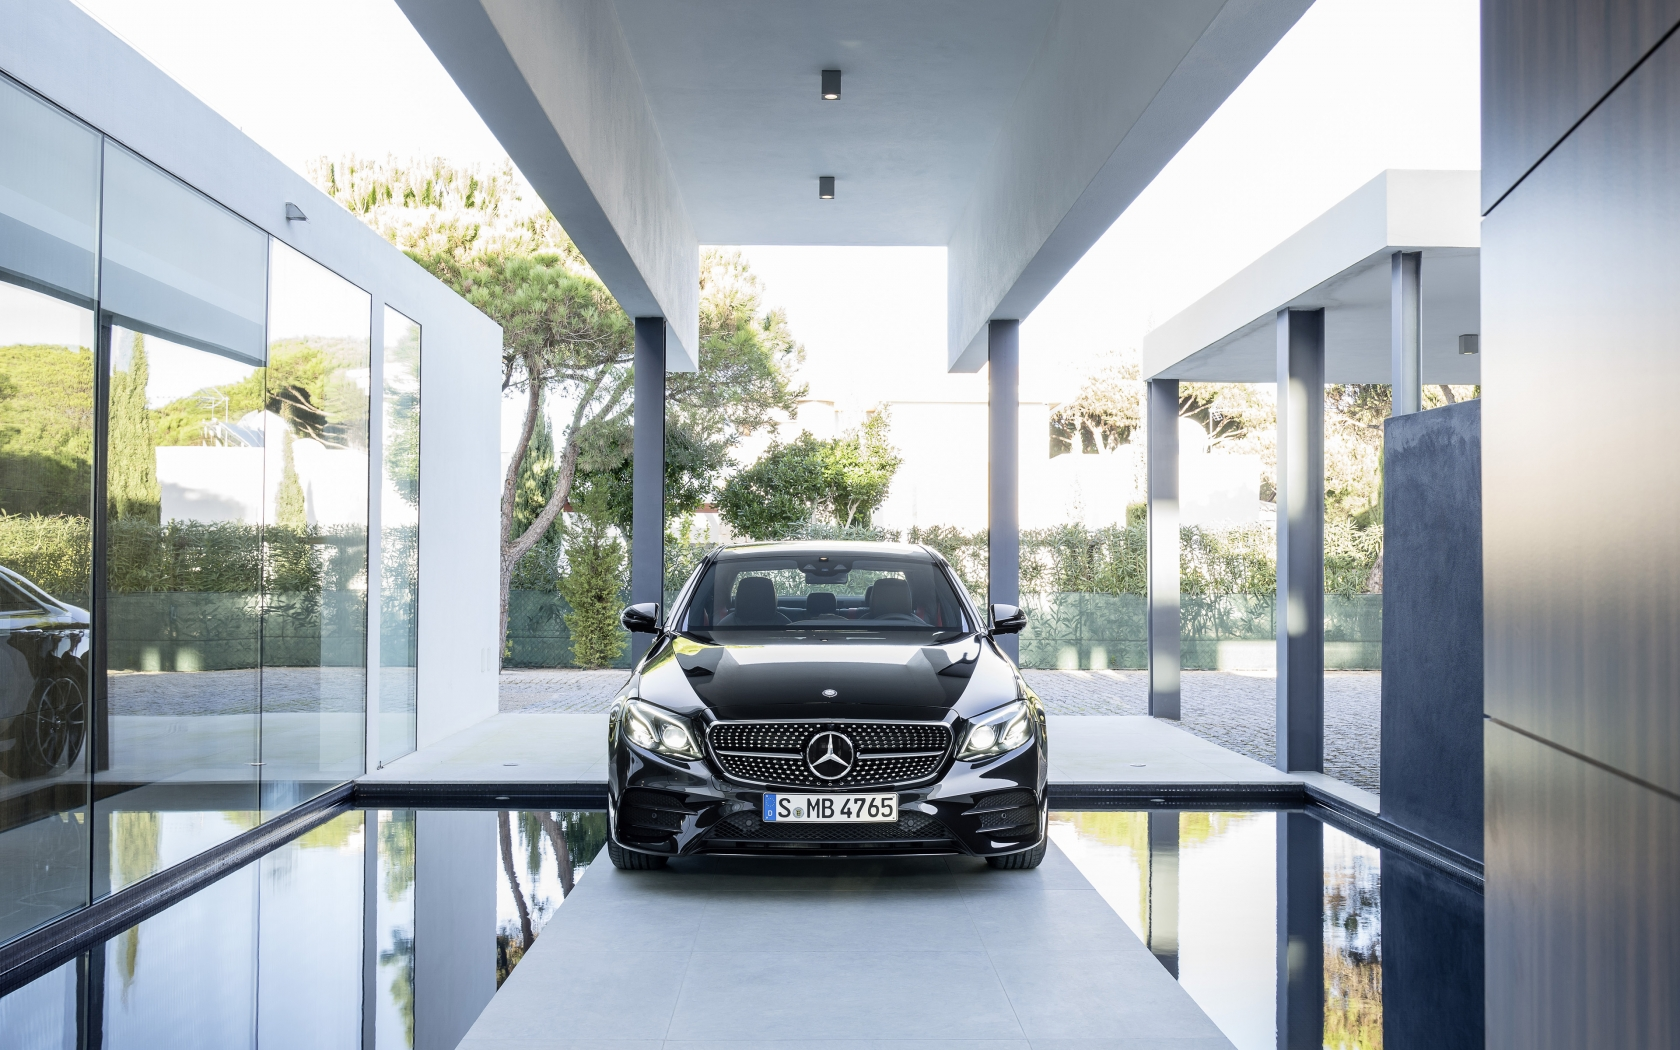 Mercedes E 43 AMG 4Matic 2017 - Photo 07 - Taille: 1680x1050